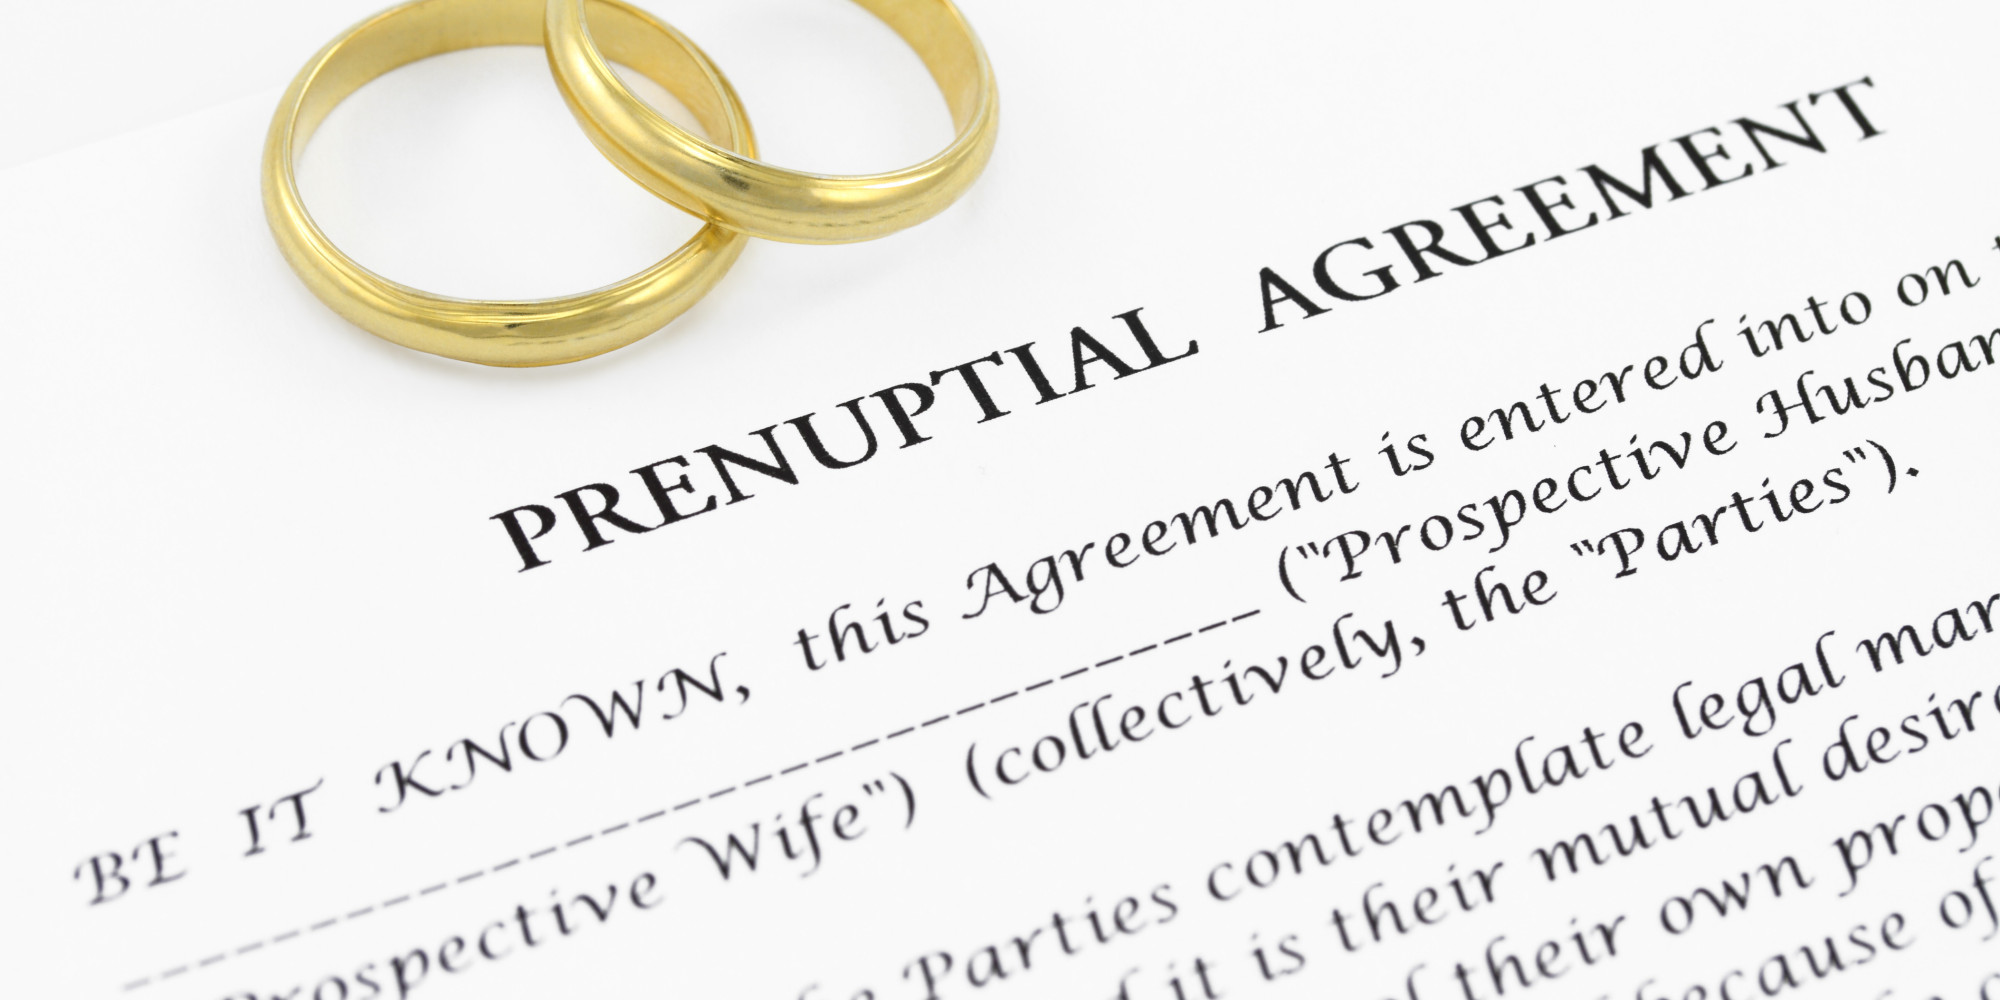 How Much Does The Date Matter When Signing A Prenuptial Agreement